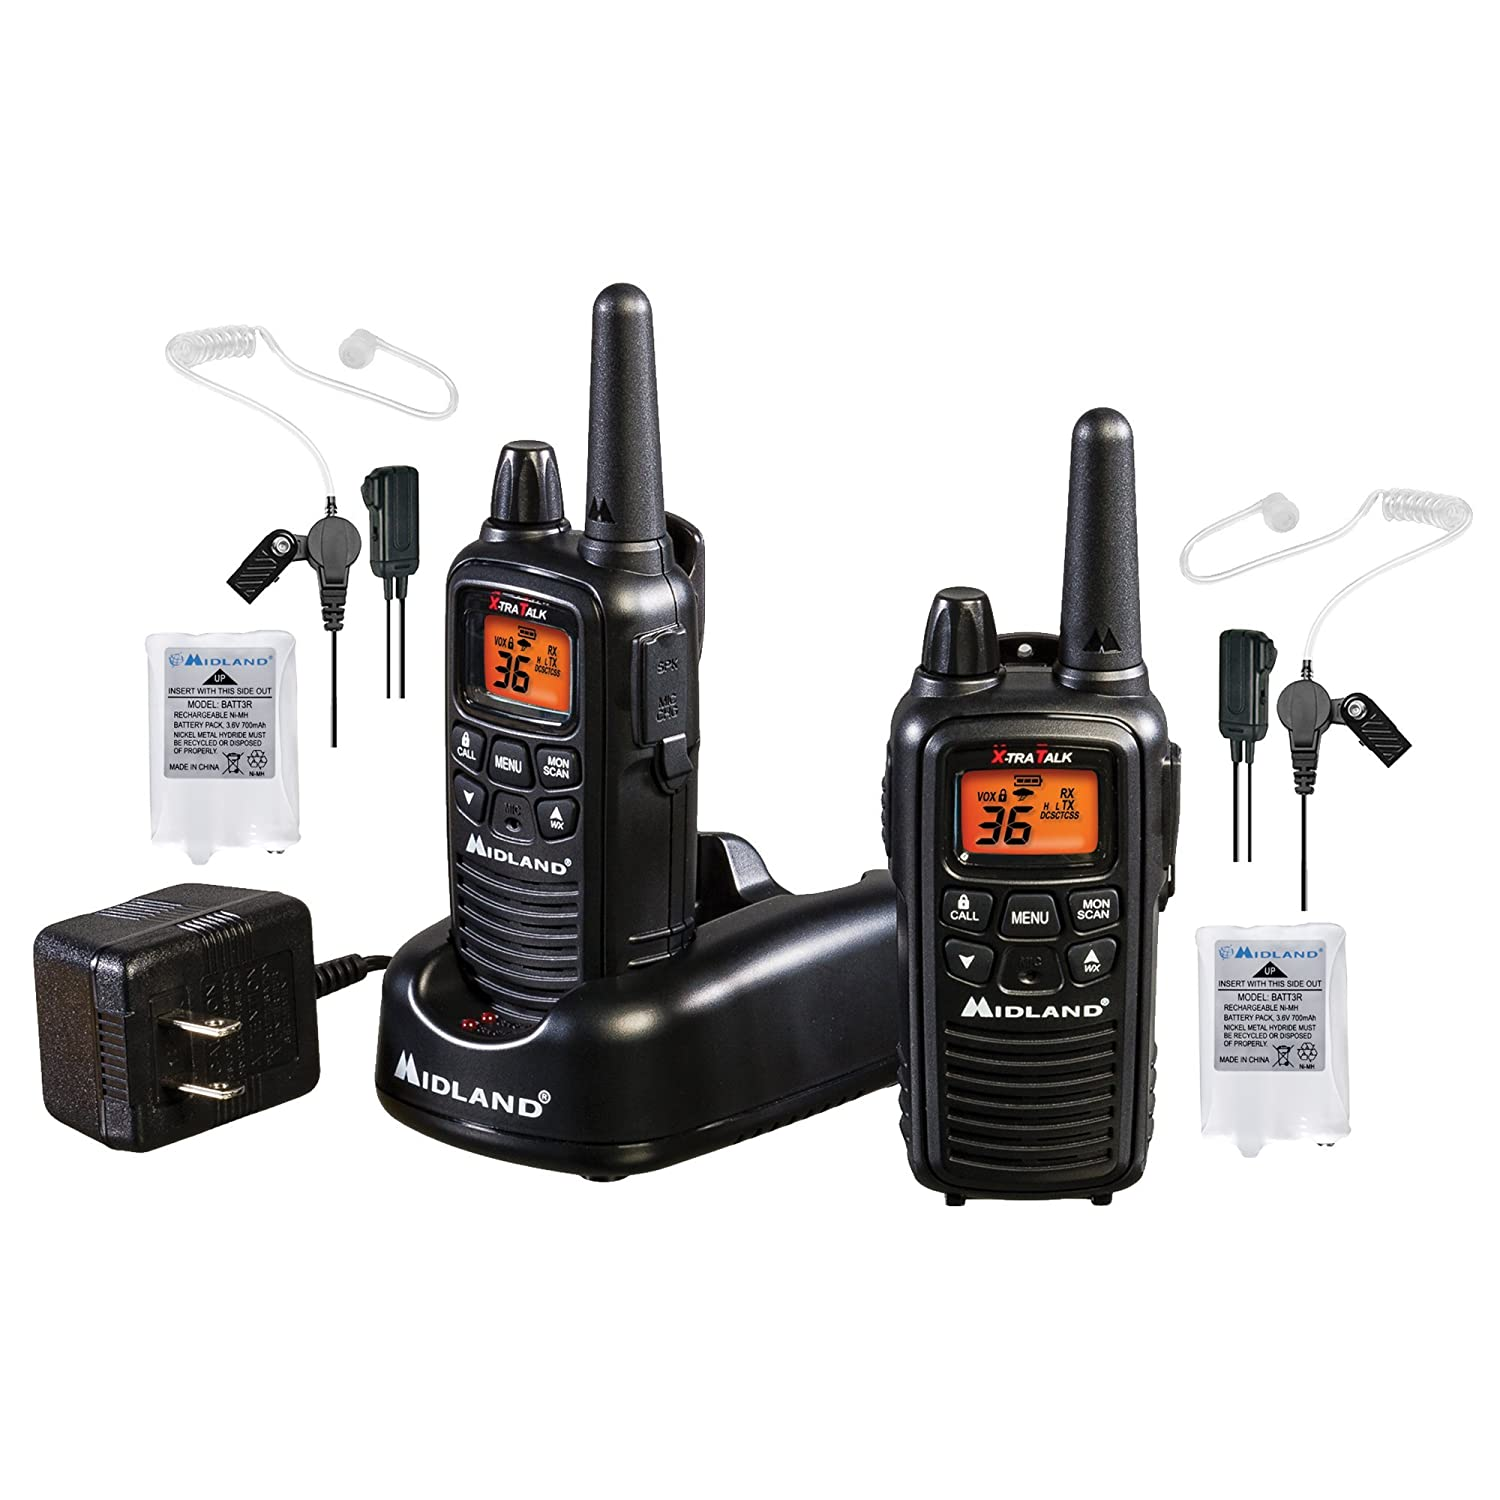 Black Pair Pack eVox for Hands-Free Operation Business Radio Bundle Concealed Headsets LXT600 36 Channel FRS Two-Way Radio Alert NOAA Weather Scan Midland